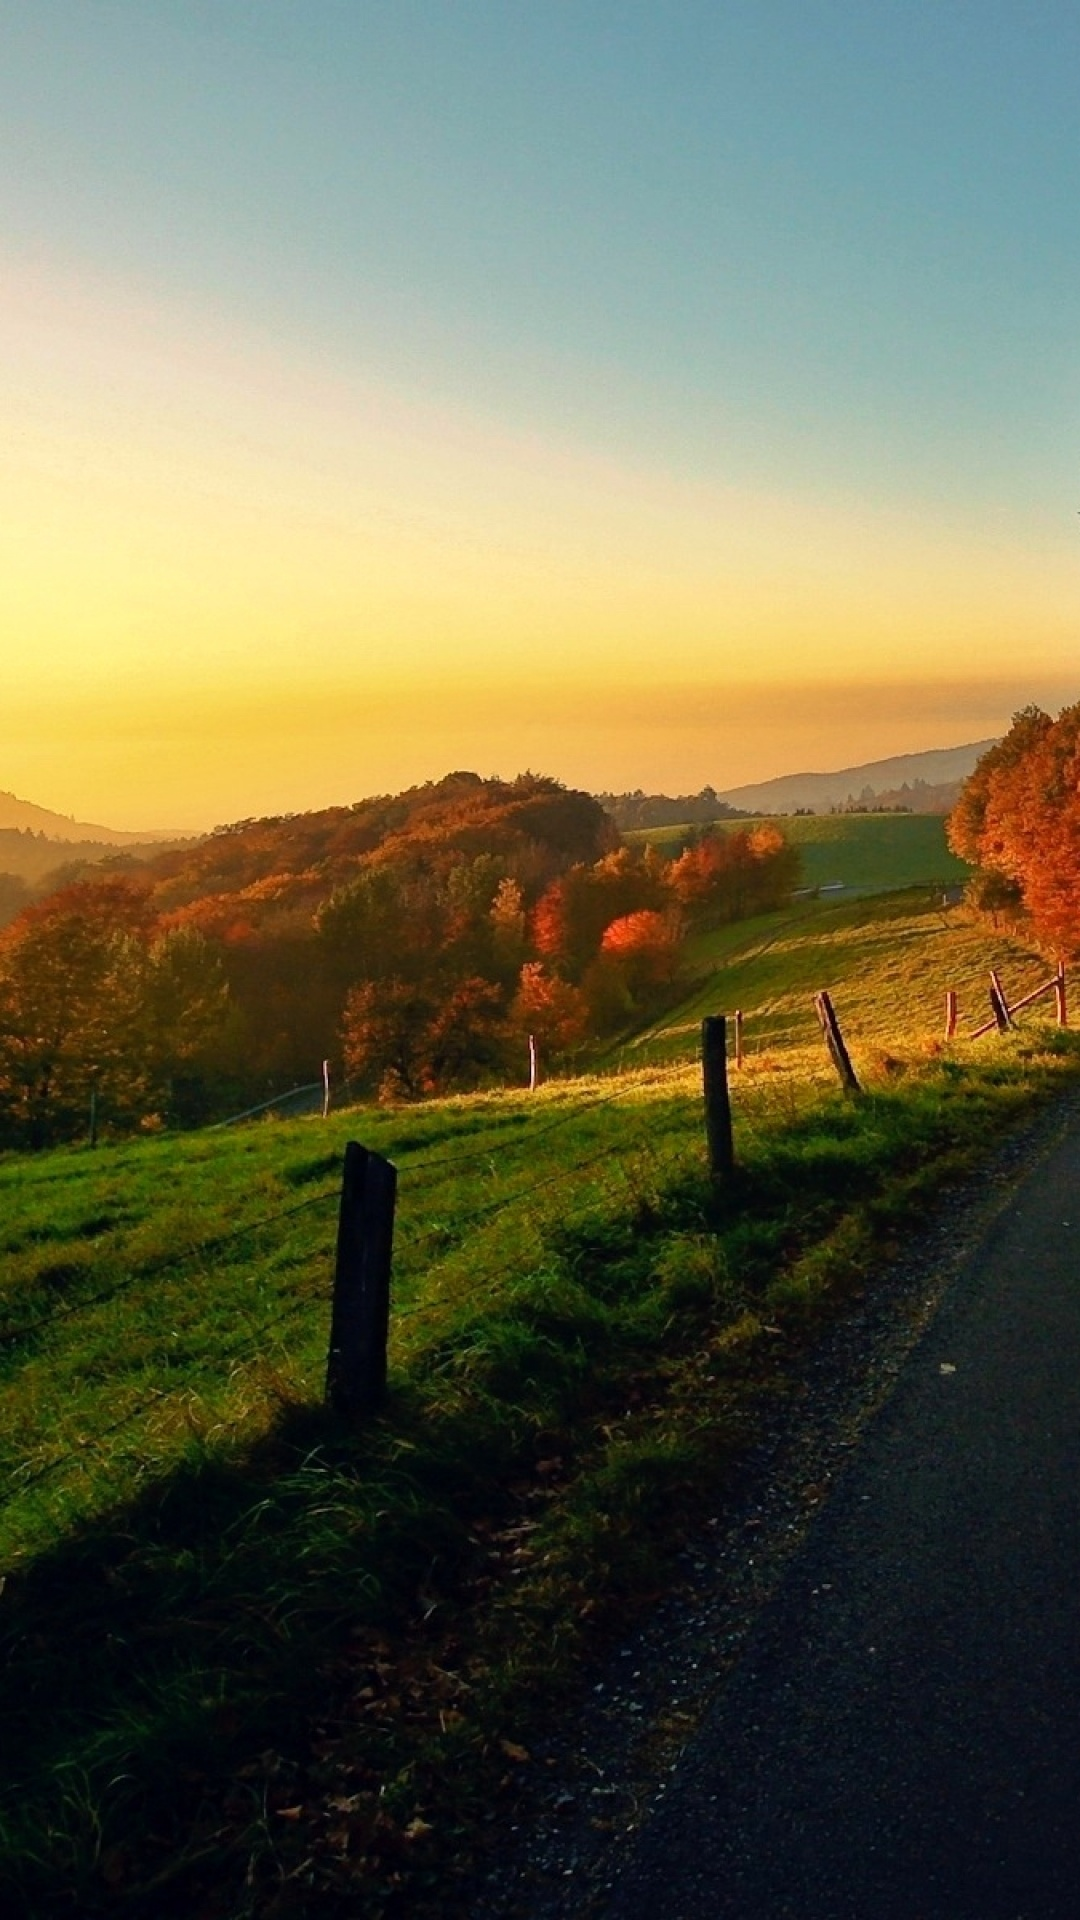 Countryside Autumn Landscape Android Wallpaper download 1080x1920